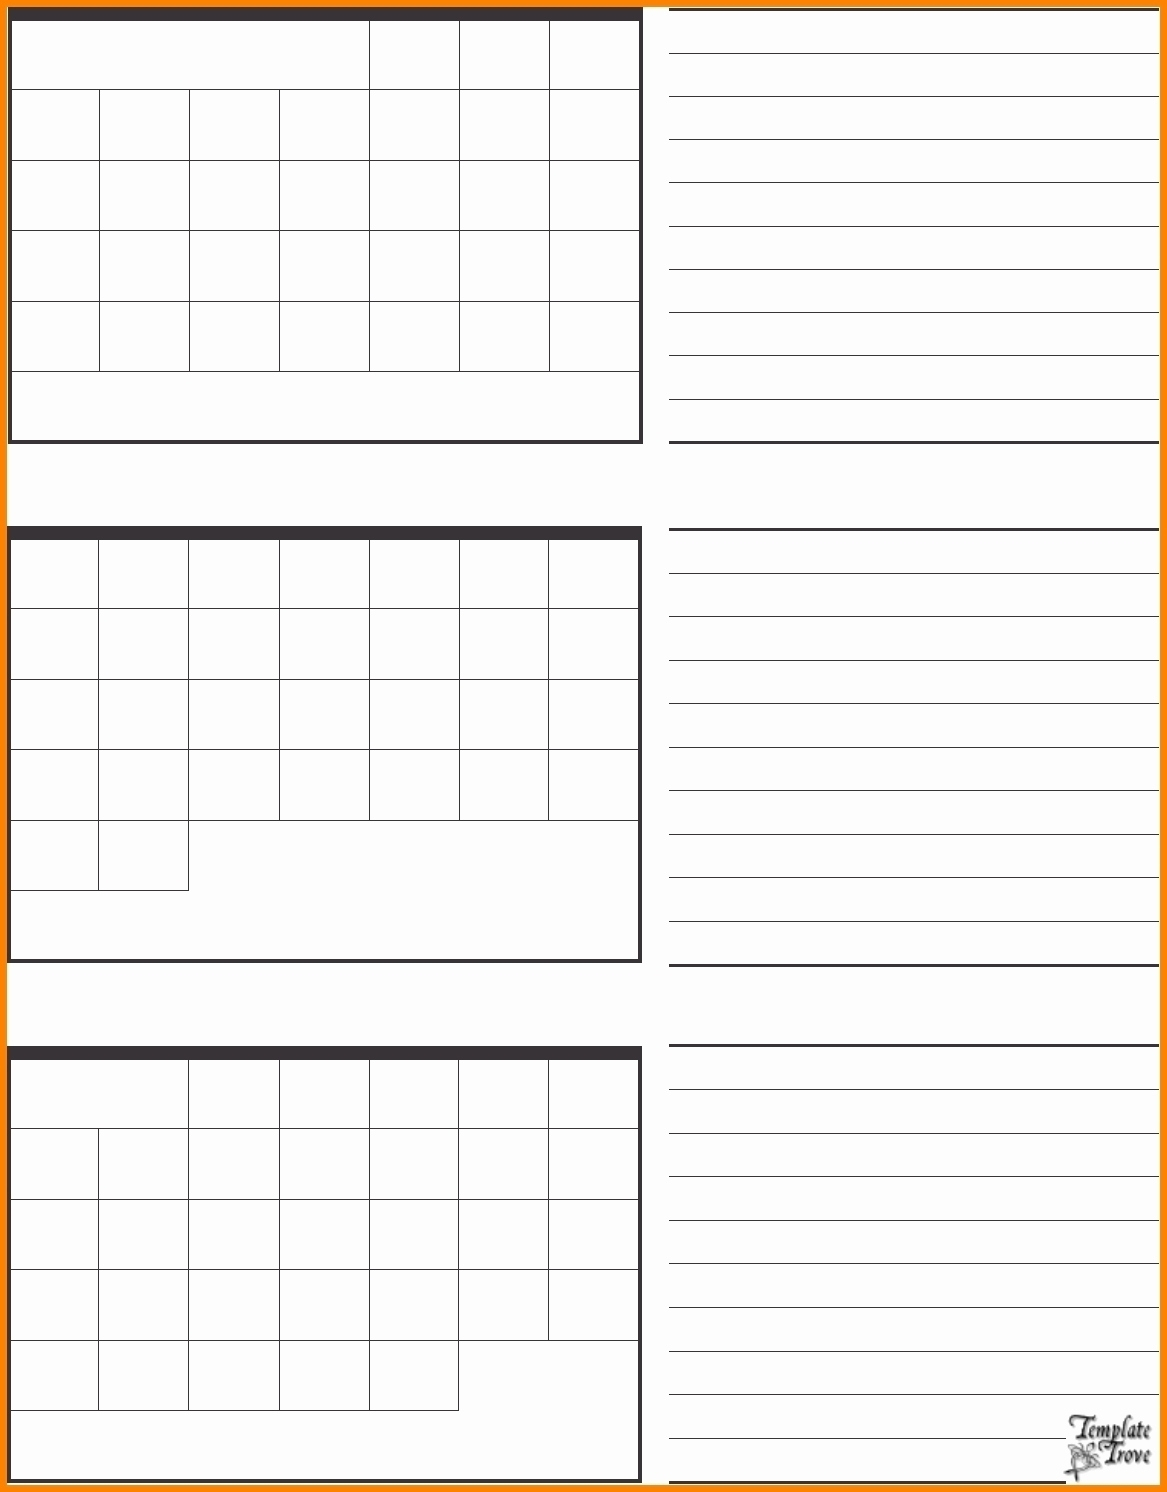 Get Printable Blank 3 Month Calendar ⋆ The Best Printable